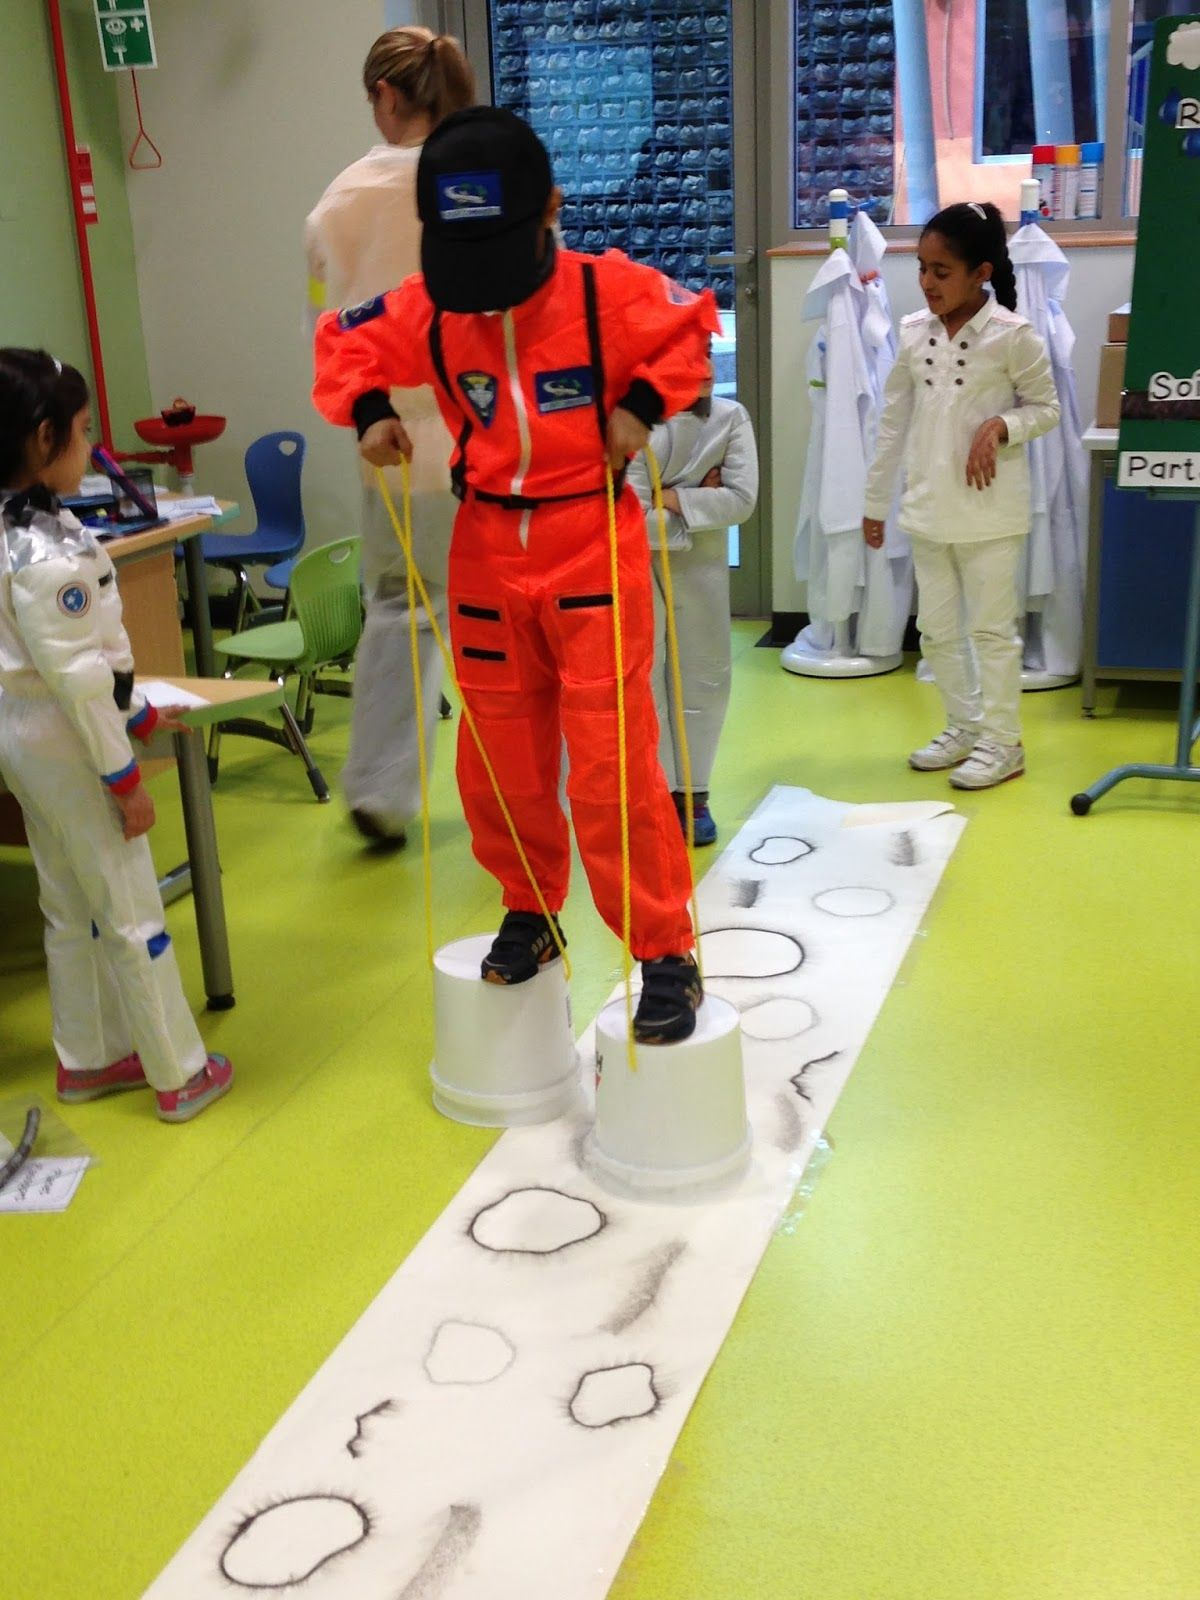 pletely Kindergarten Sublime Space Unit Walking on the Moon possibly Space Gallery activity